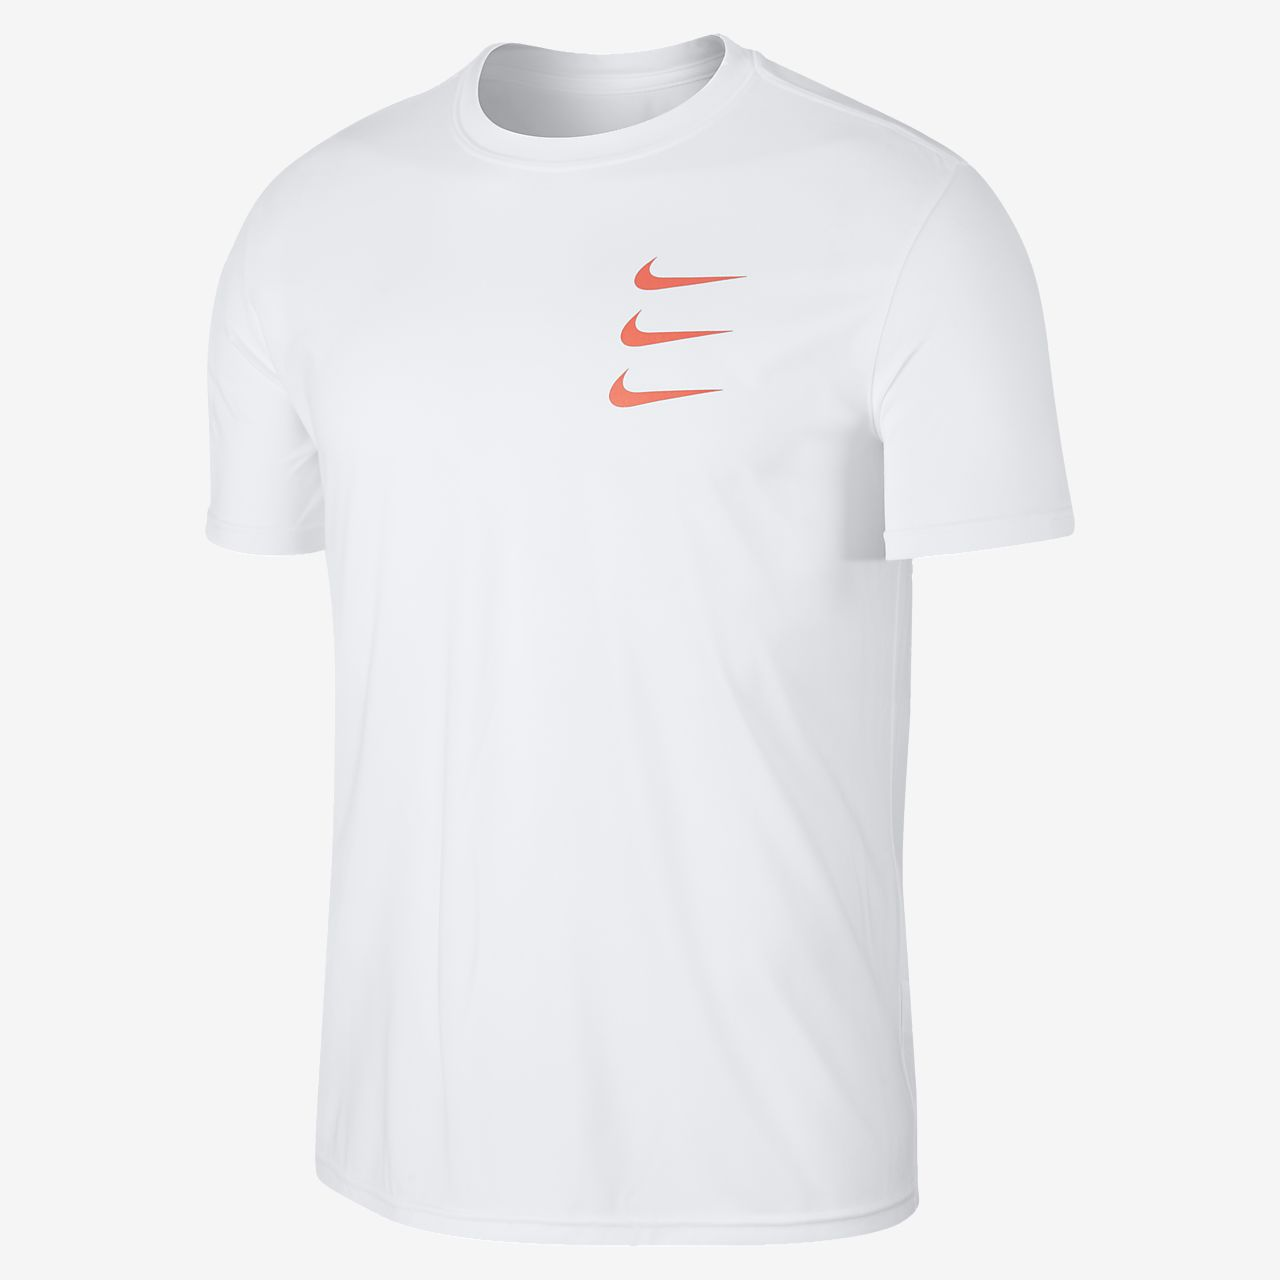 Playera de running para hombre Nike Dri-FIT (London)